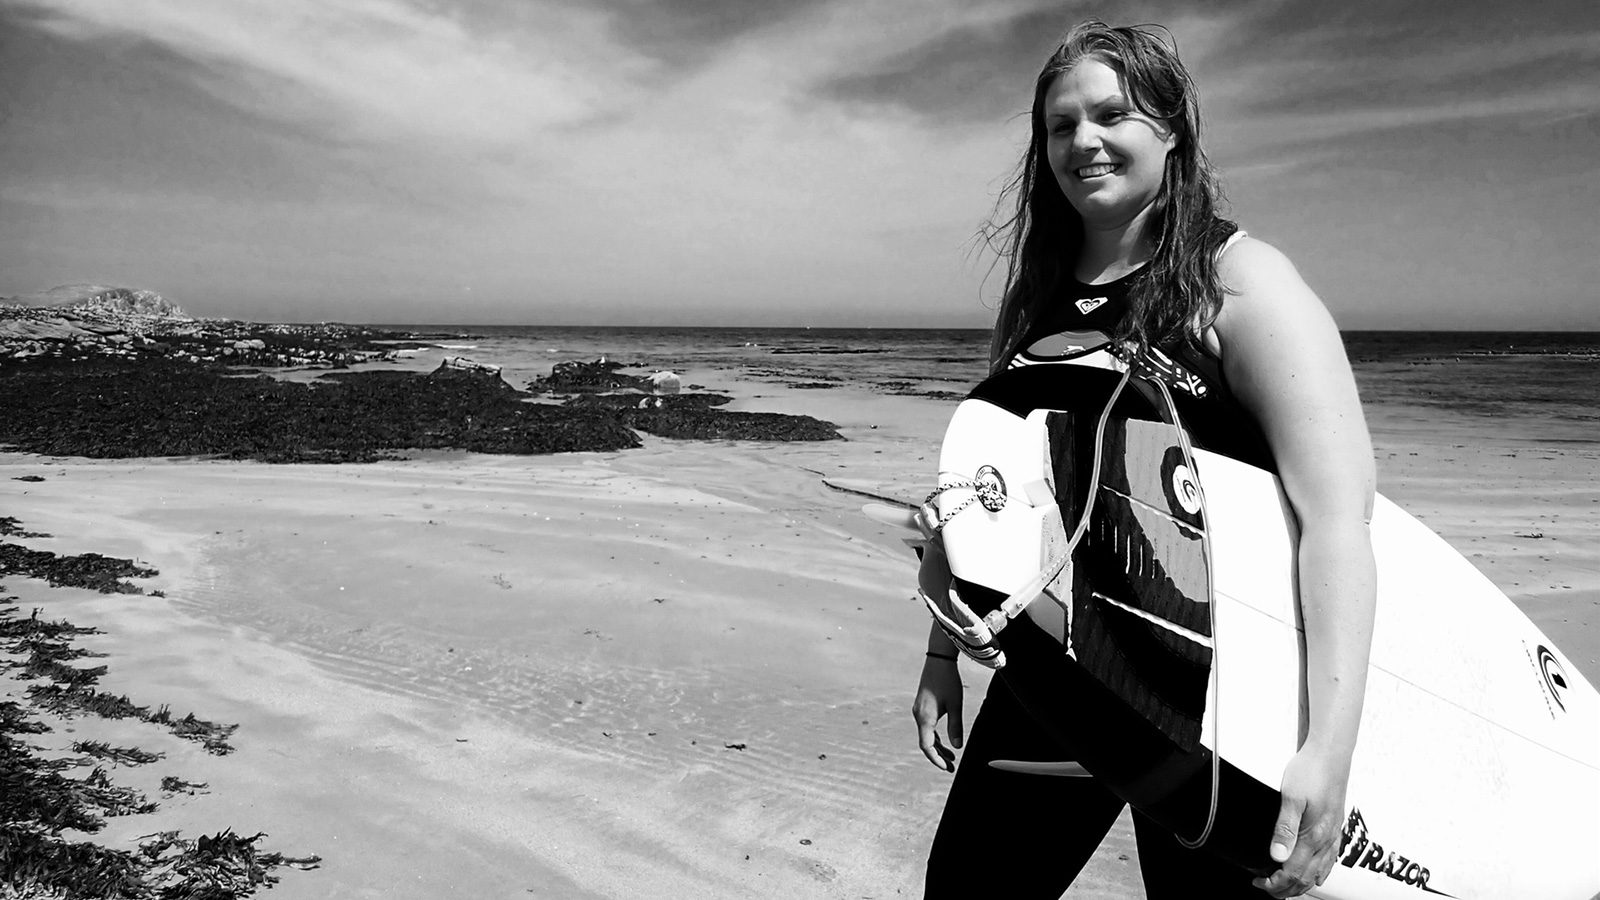 sally surfing instructor ocean vertical east lothian 1600 opt